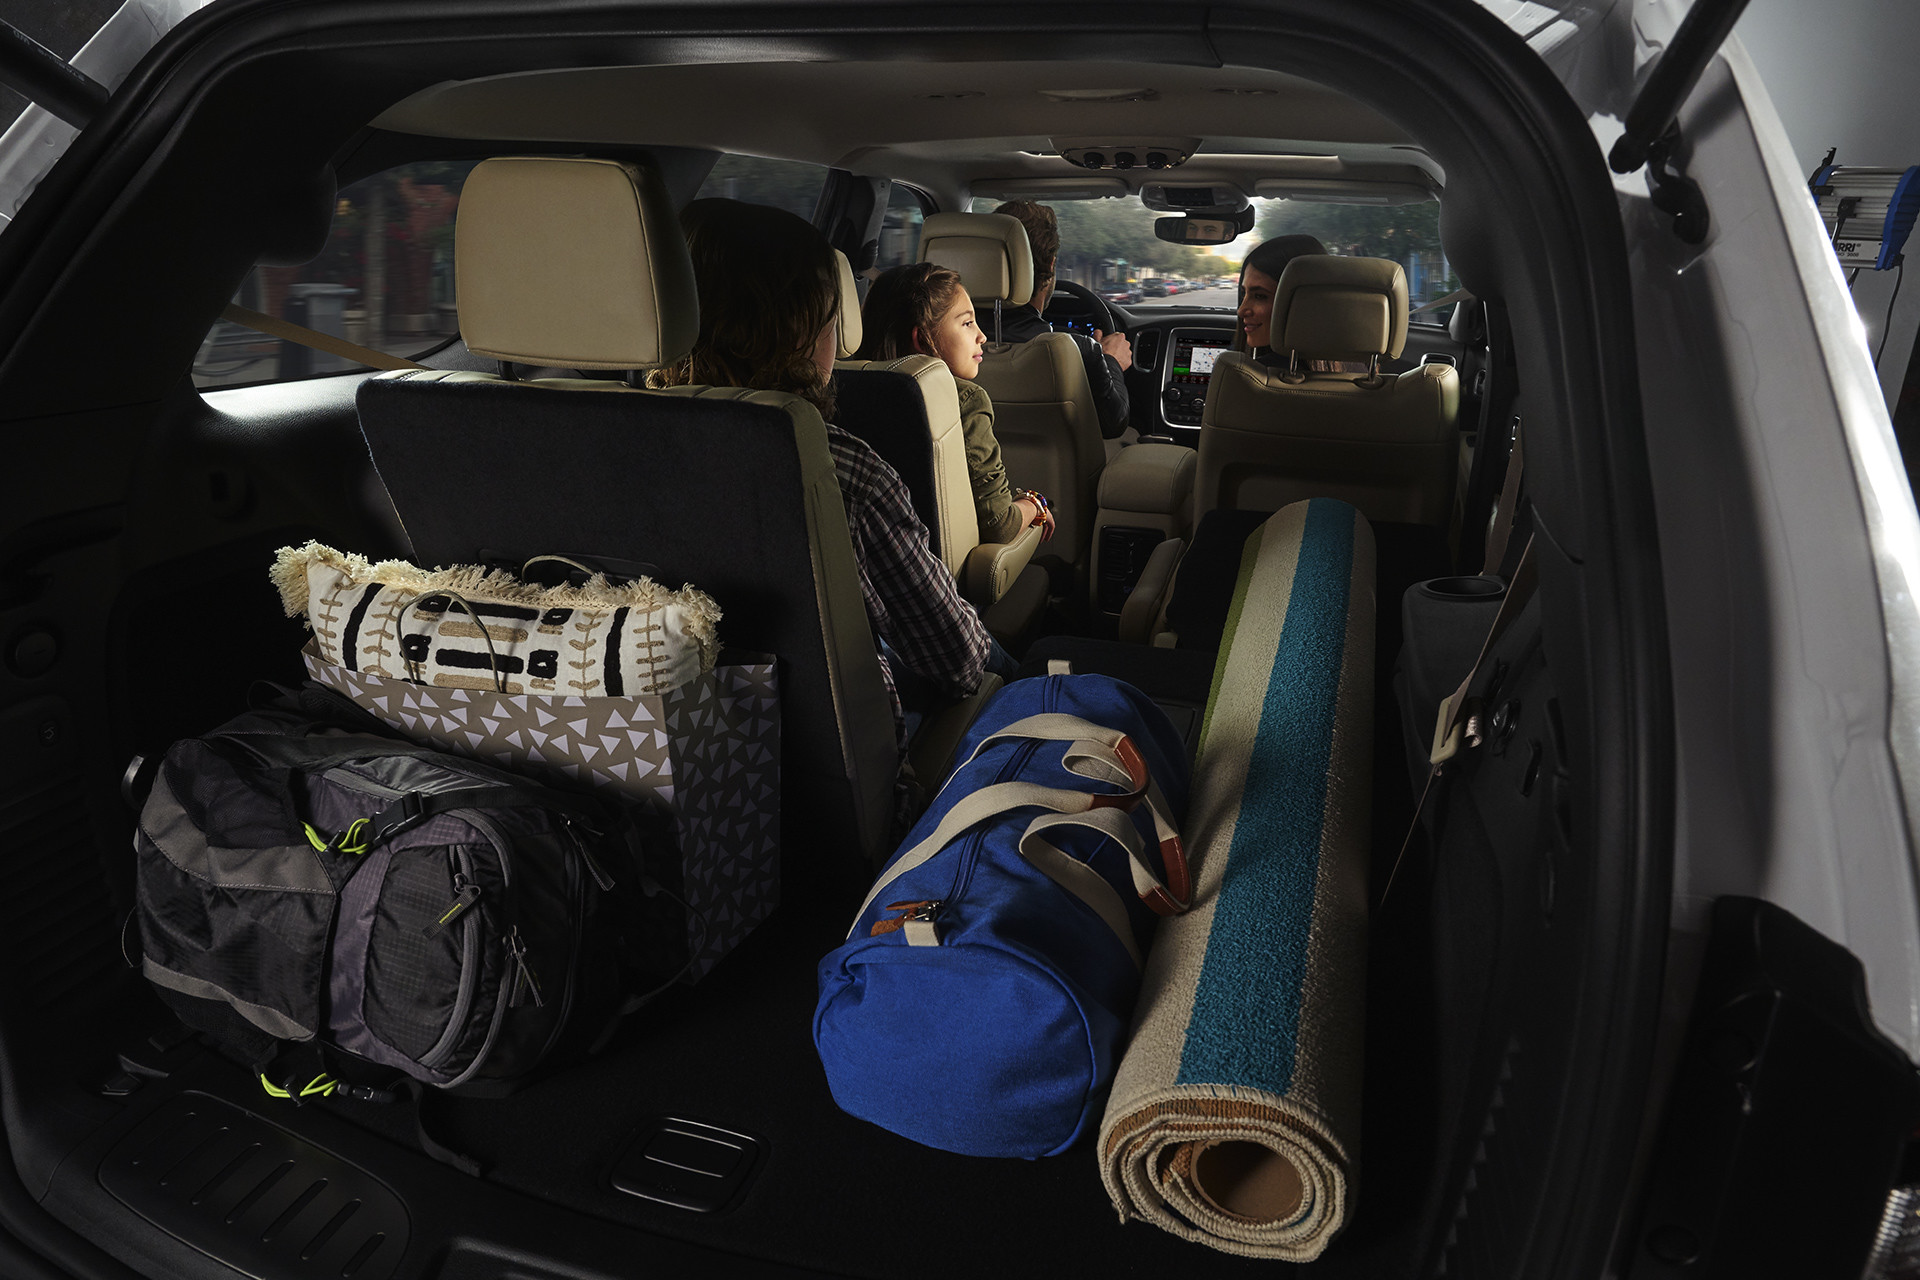 2019 Dodge Durango interior view showing versatile seating and cargo options